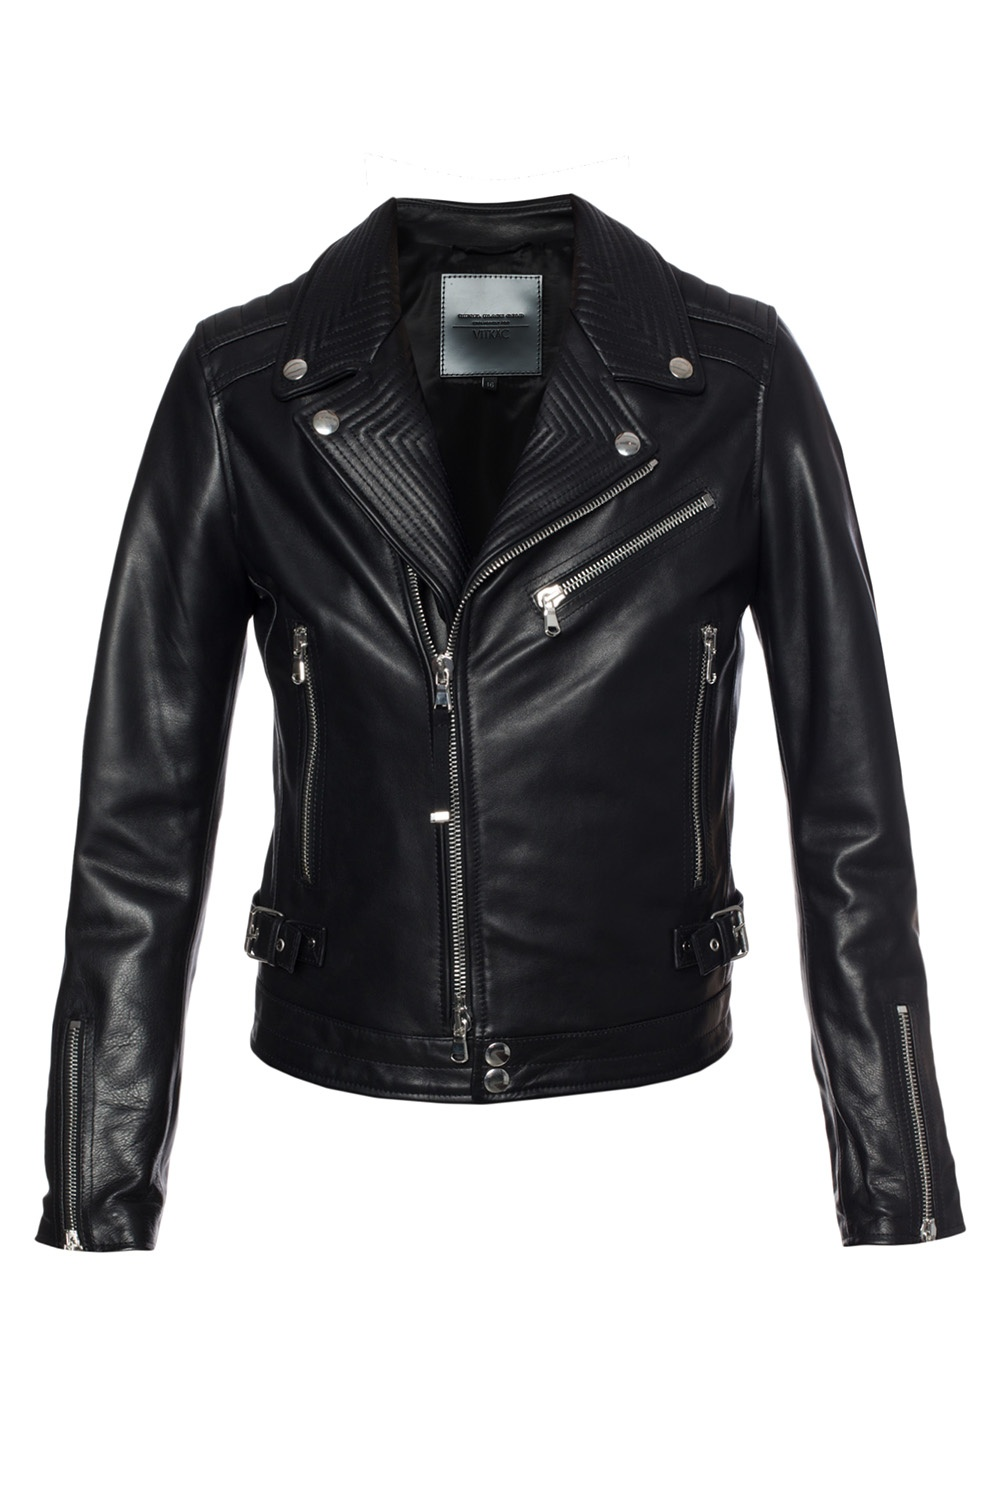 Diesel Biker jacket designed for Vitkac